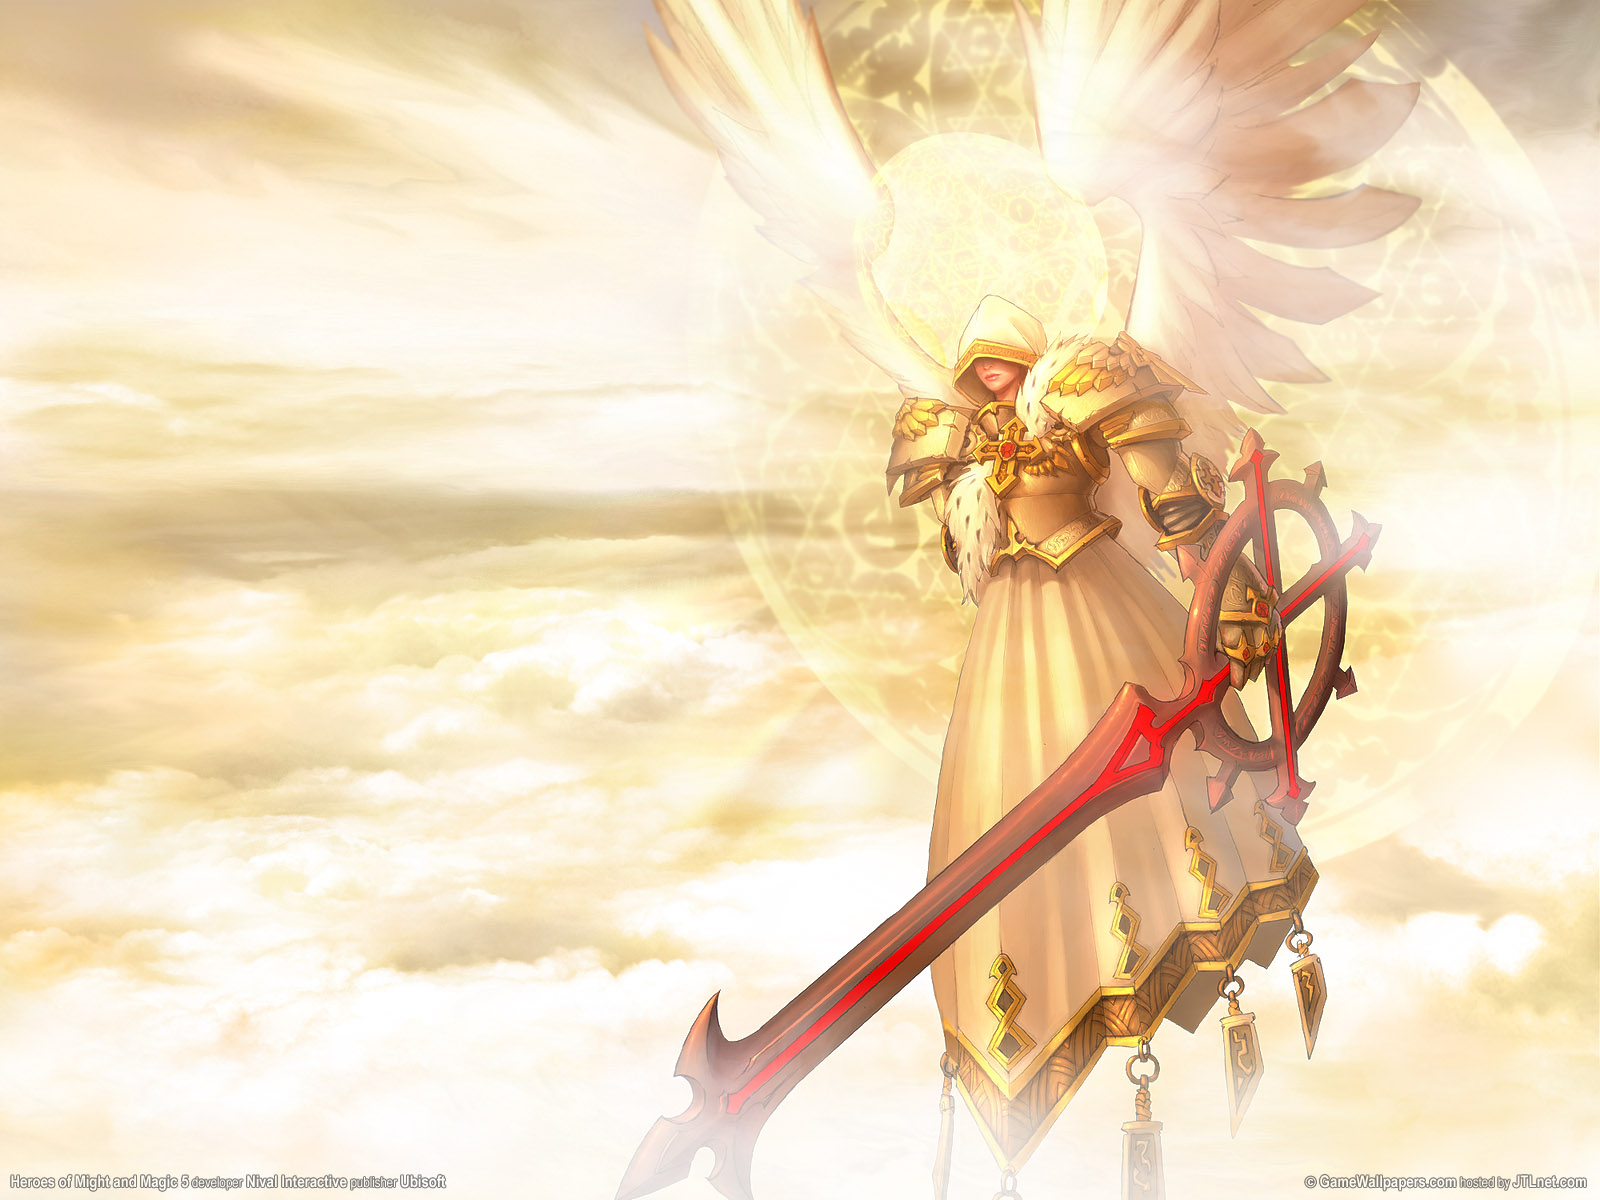 WALLPAPERS HD FREE - Angels, archangels.